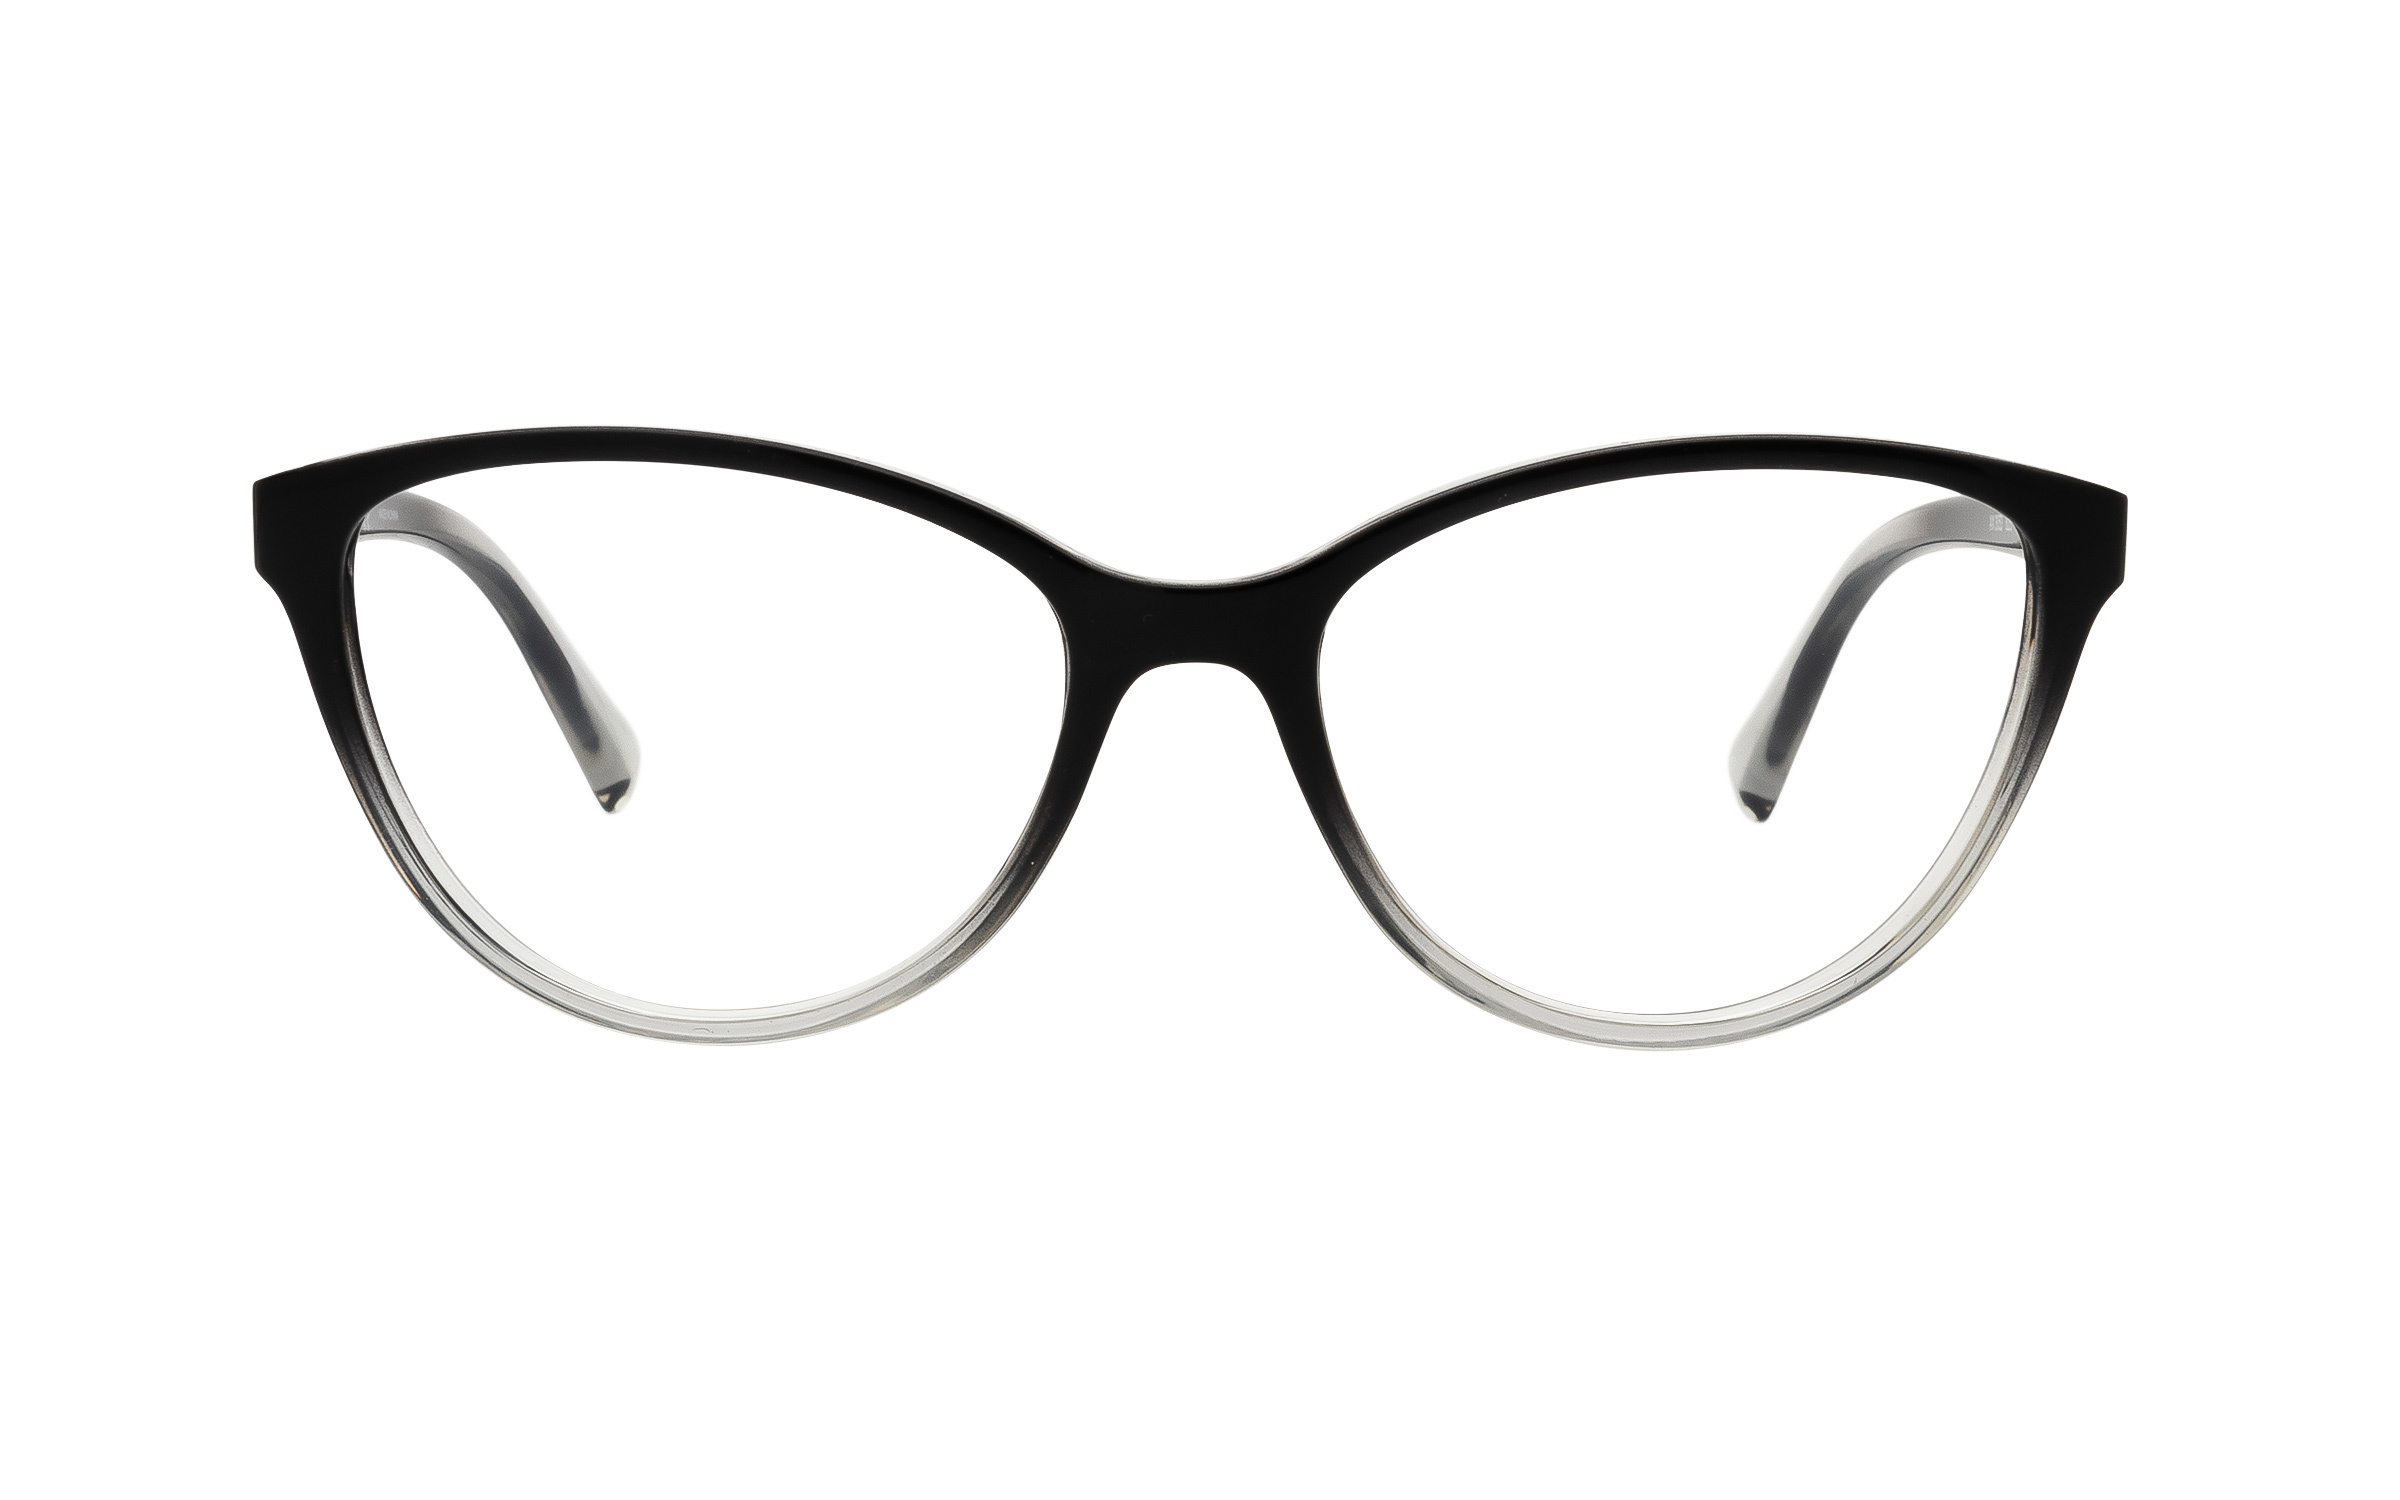 http://www.coastal.com/ - Armani Exchange AX3053 8255 (53) Eyeglasses and Frame in Smoke Black – Online Coastal